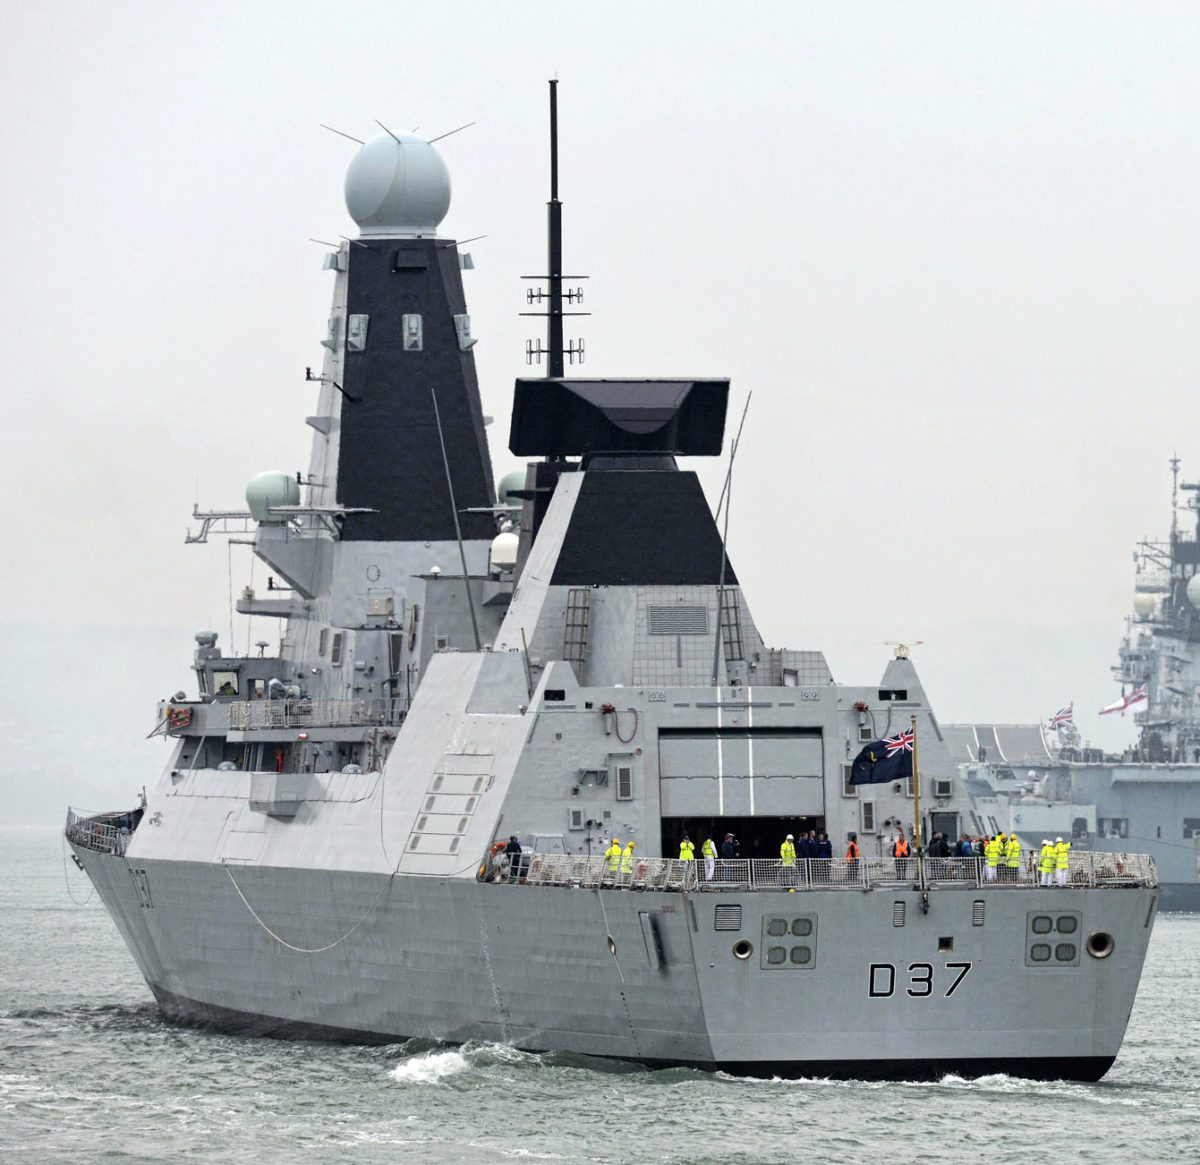 bae systems delivers sixth type 45 destroyer gcaptain